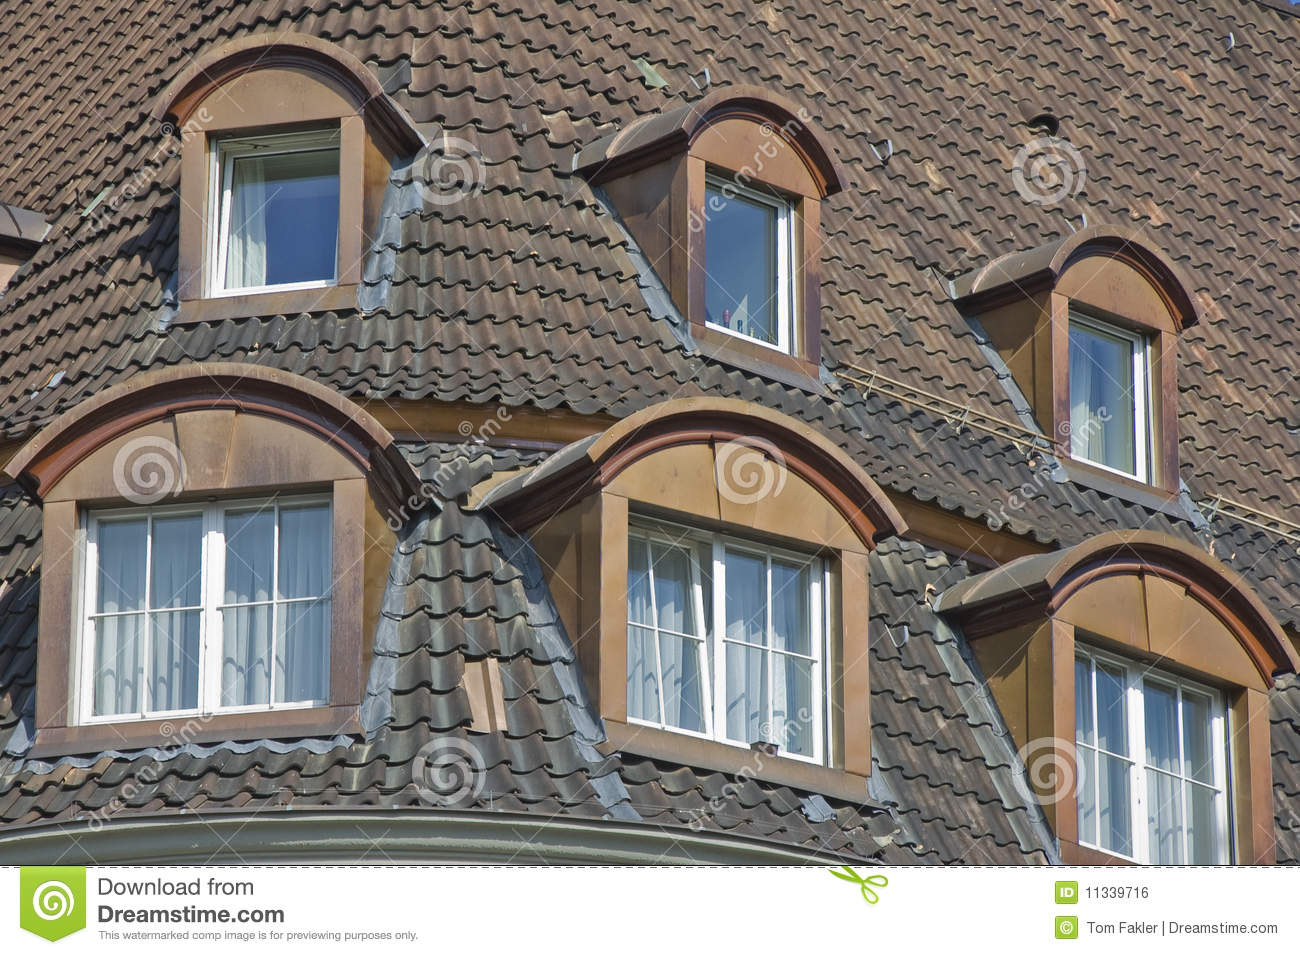 Bonneted Dormer Windows And Tiled Roof Stock Photo Image